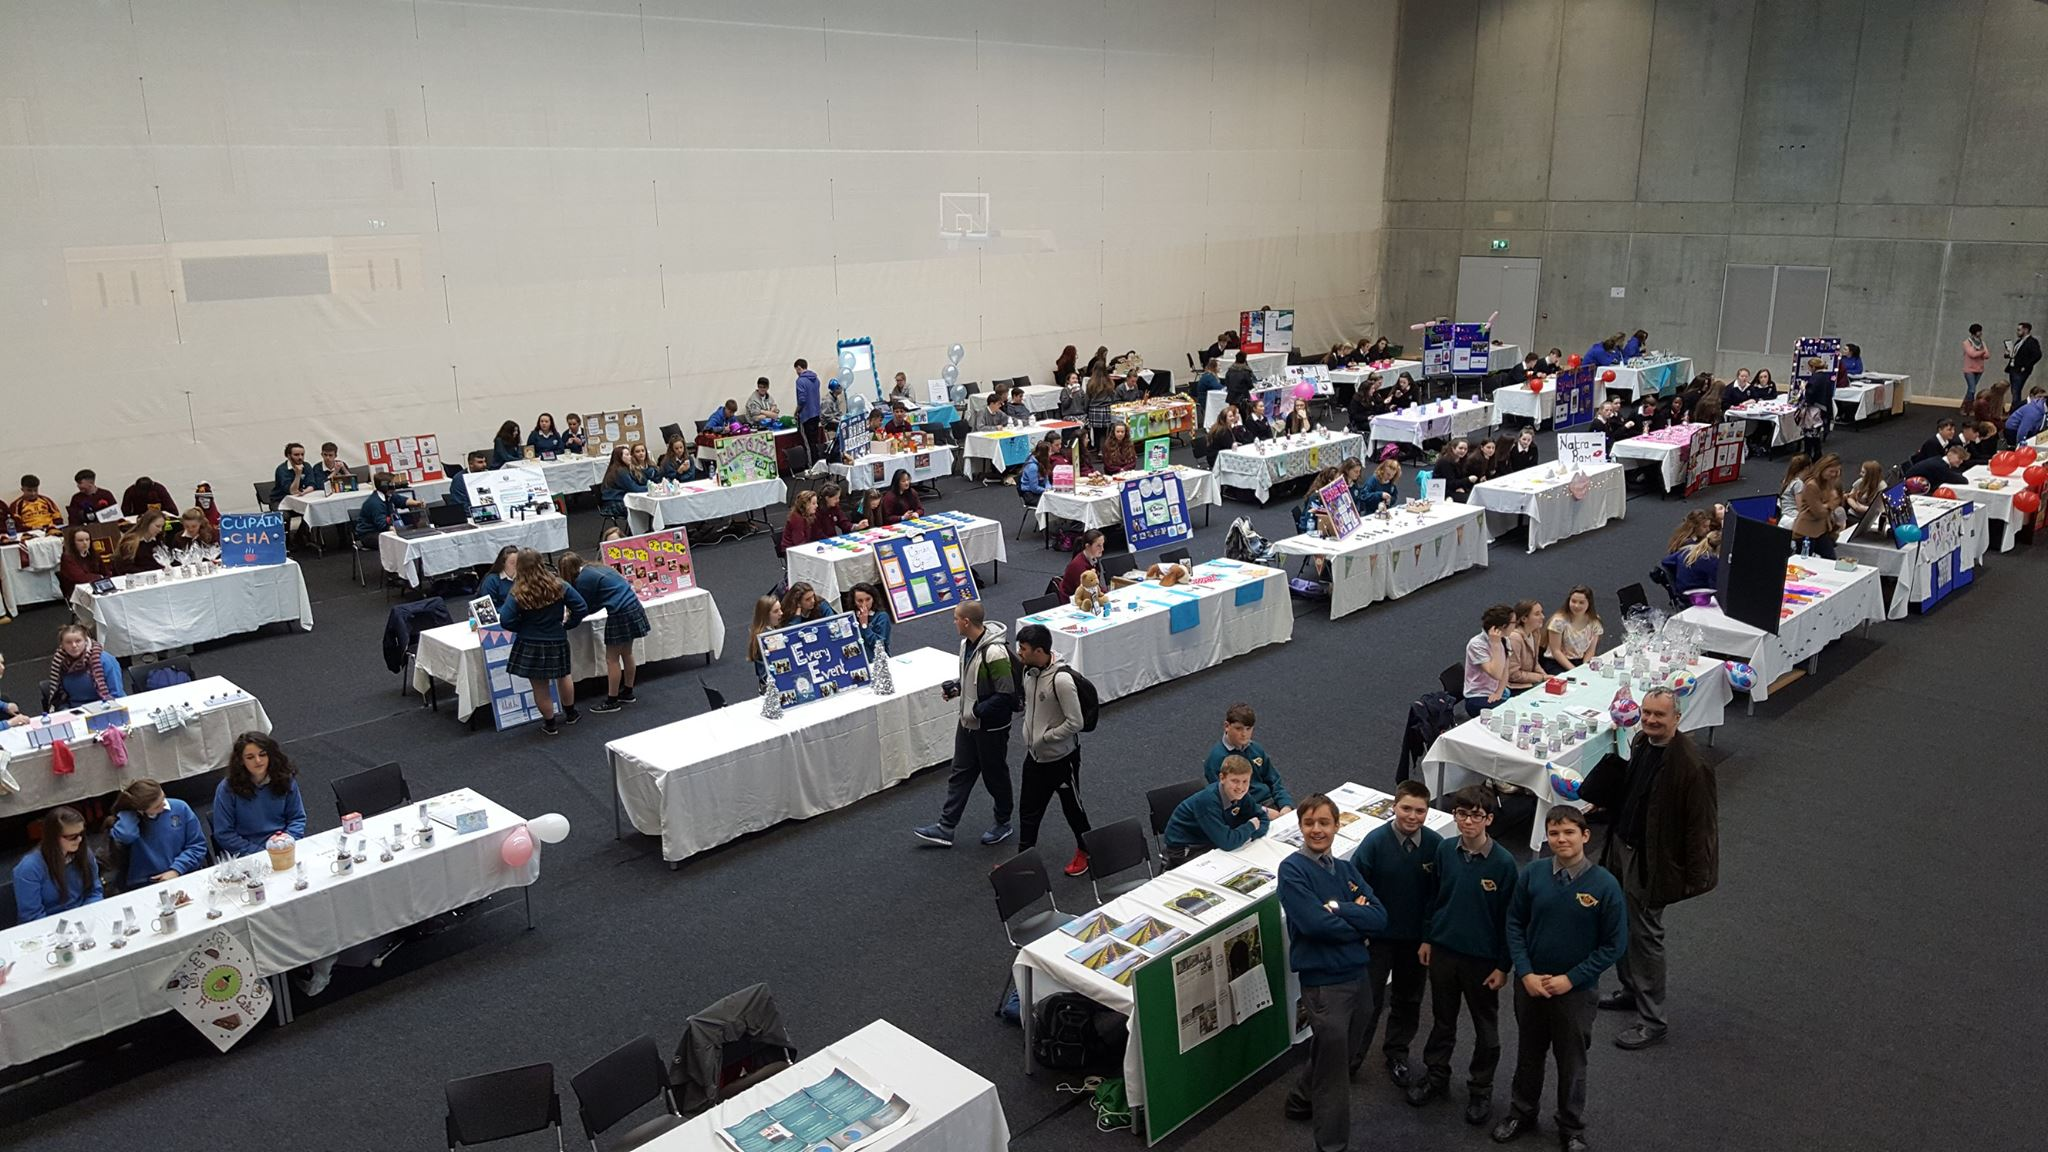 We're live from the LEO Waterford Student Enterprise Expo this Thursday